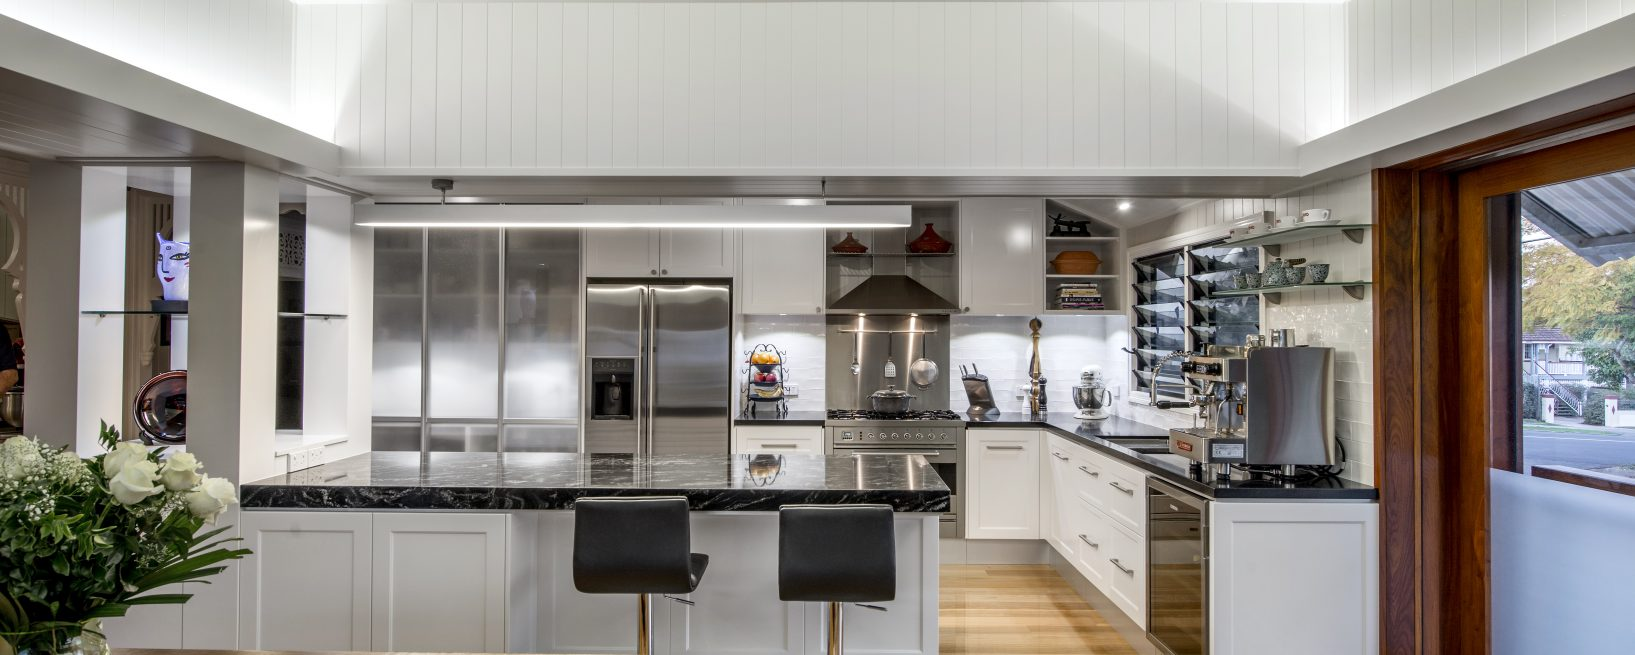 Queenslander Style Kitchen Renovation